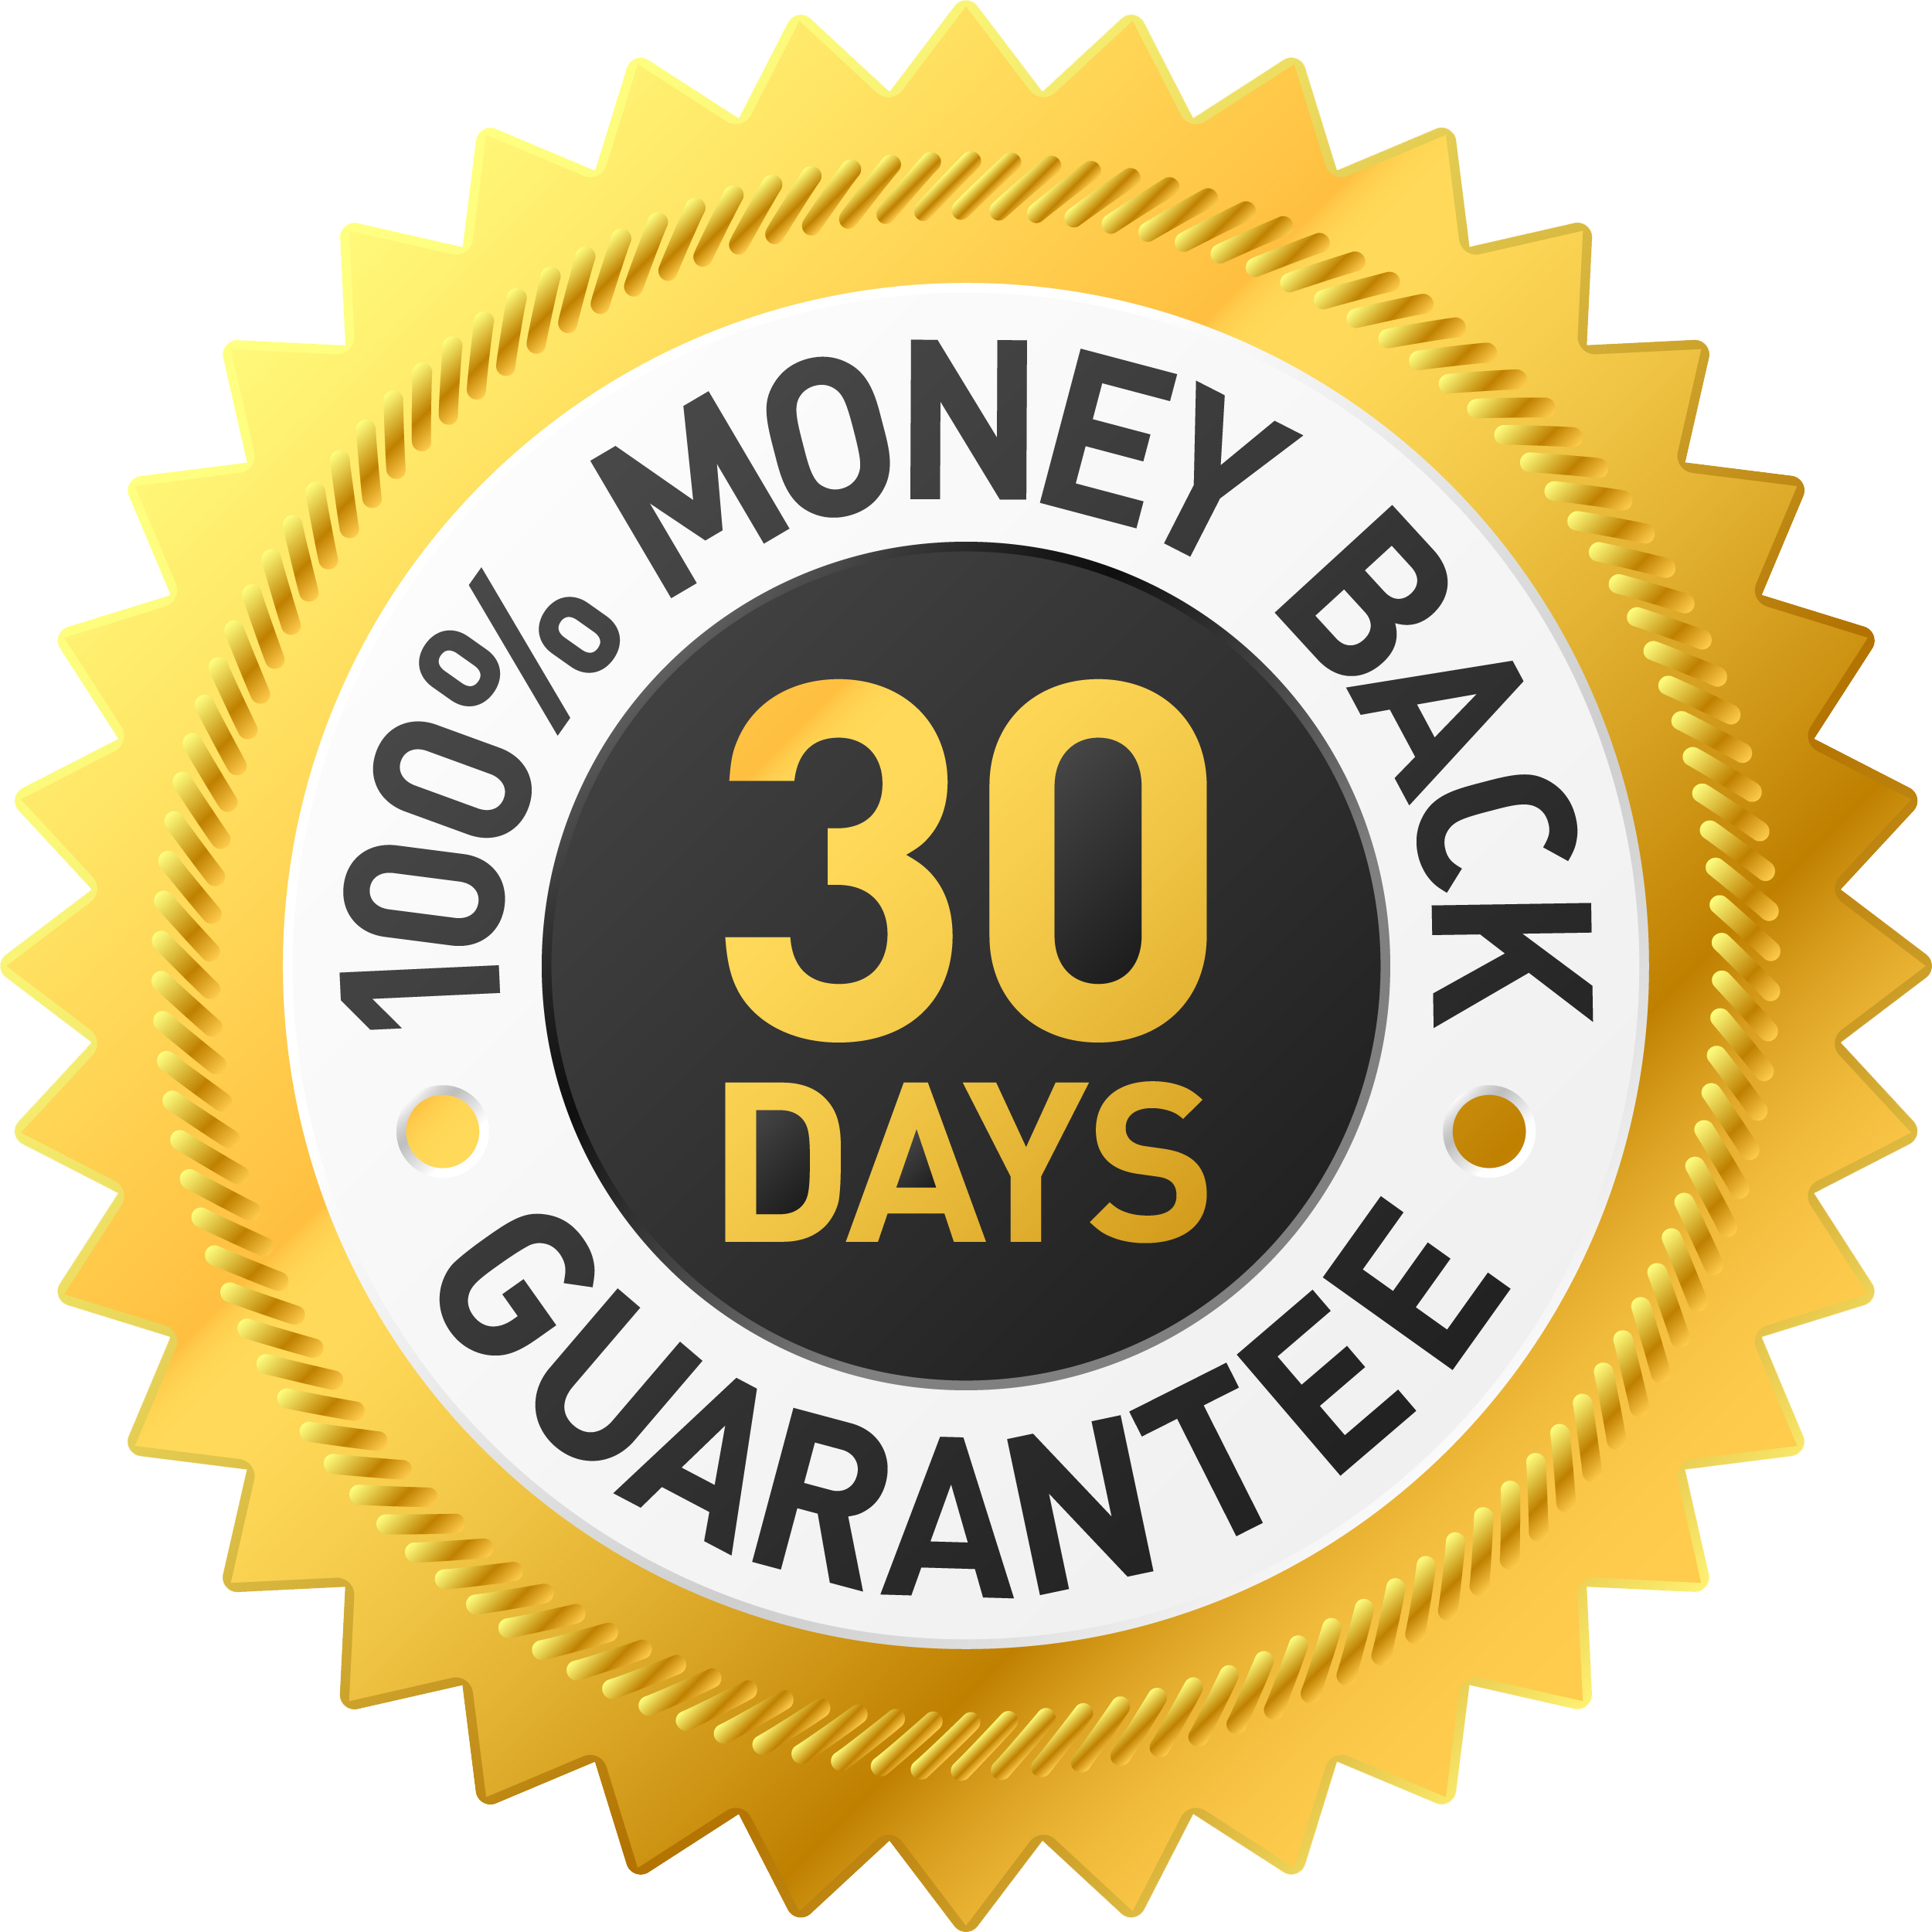 Money Back Guarantee Png, png collections at sccpre.cat.